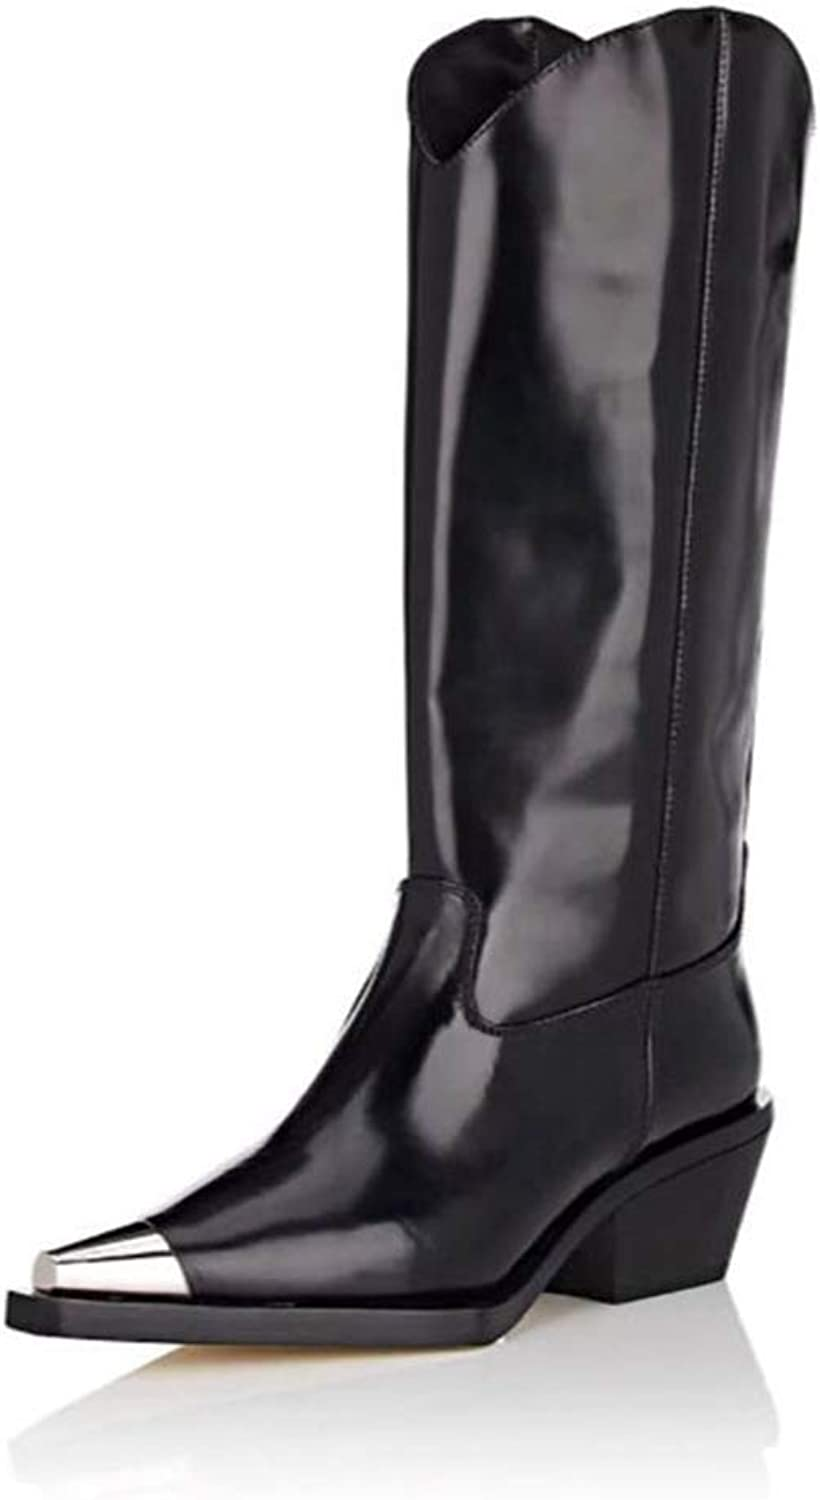 T-JULY Winter Ladies Mid Calf Martin Boots Square Thick Heel Metal Point Toe Slim Long Booties Soft Women Motorcycle Boots